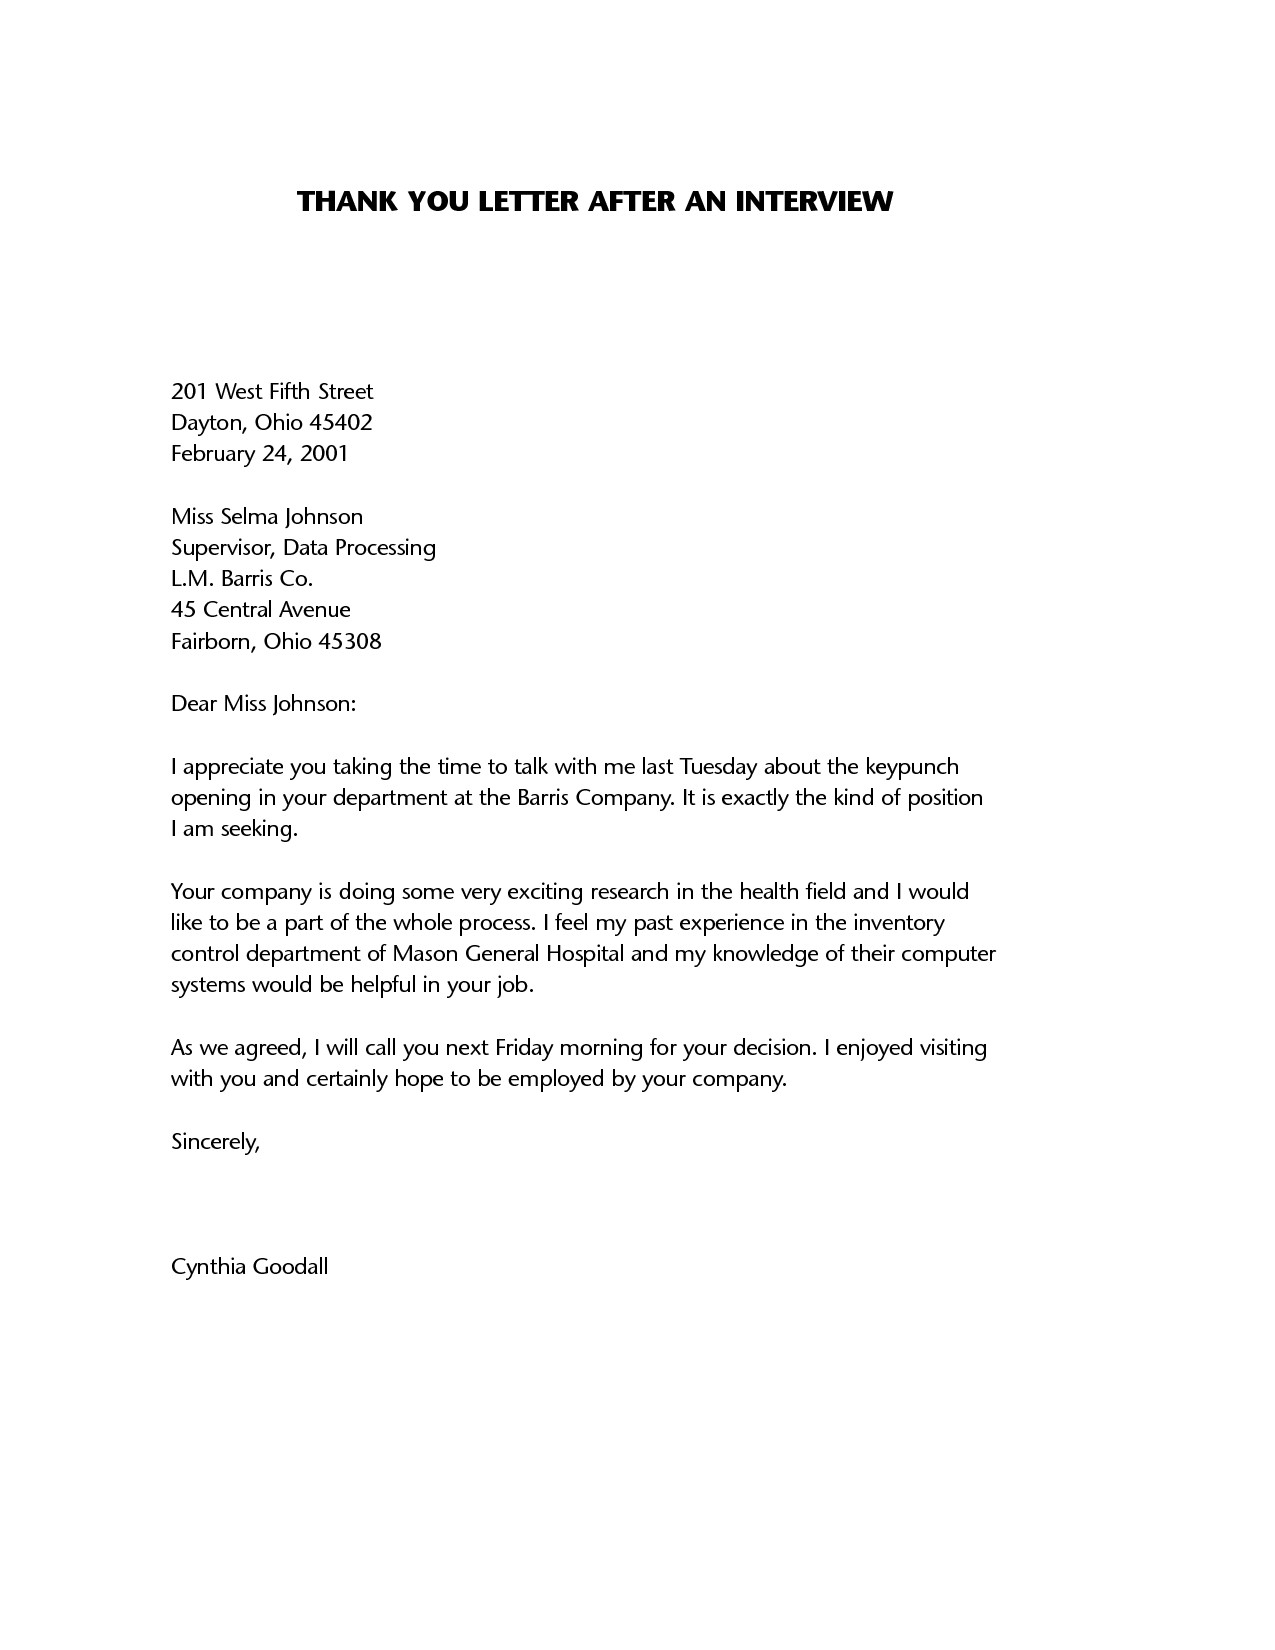 Interview Thank You Letter Template - Thank You Letter after Job Interview Sample New Interview Thank You